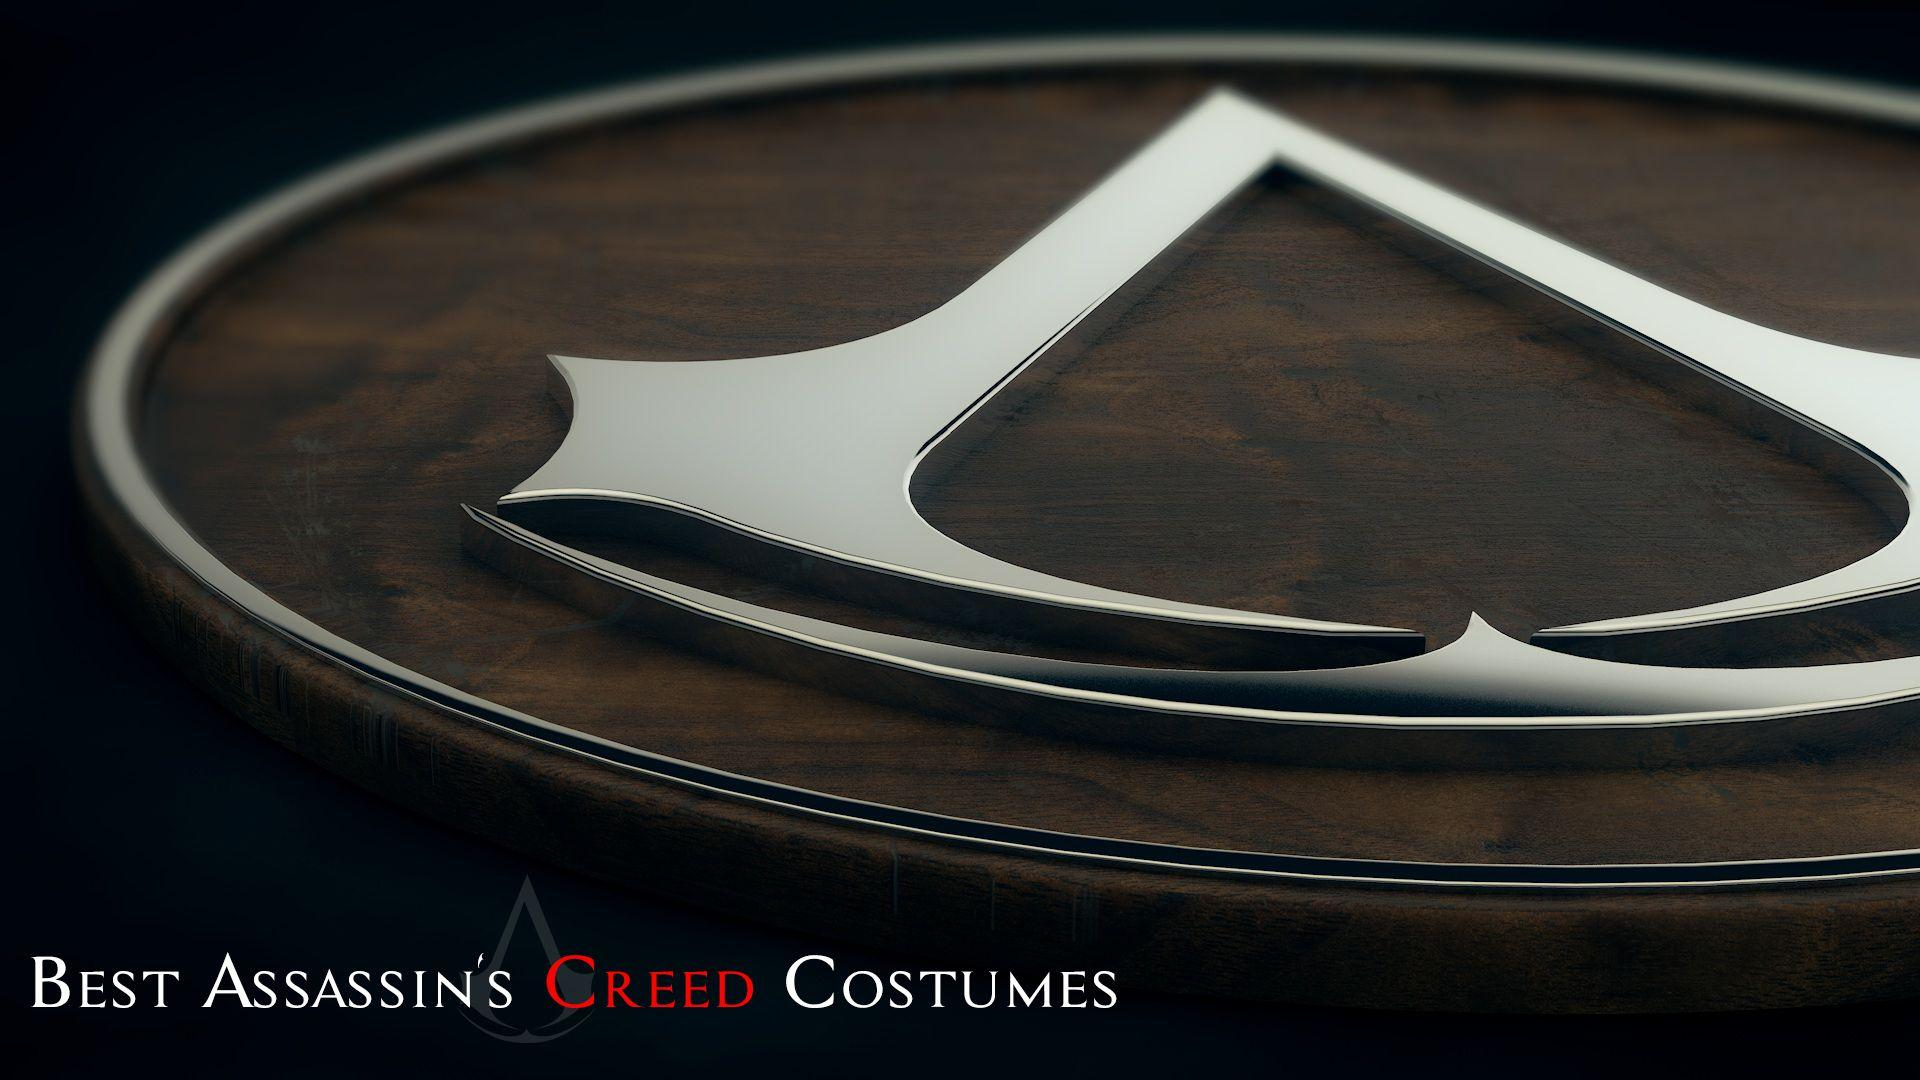 4 Assassins Creed Costumes To Steal The Show In 2016